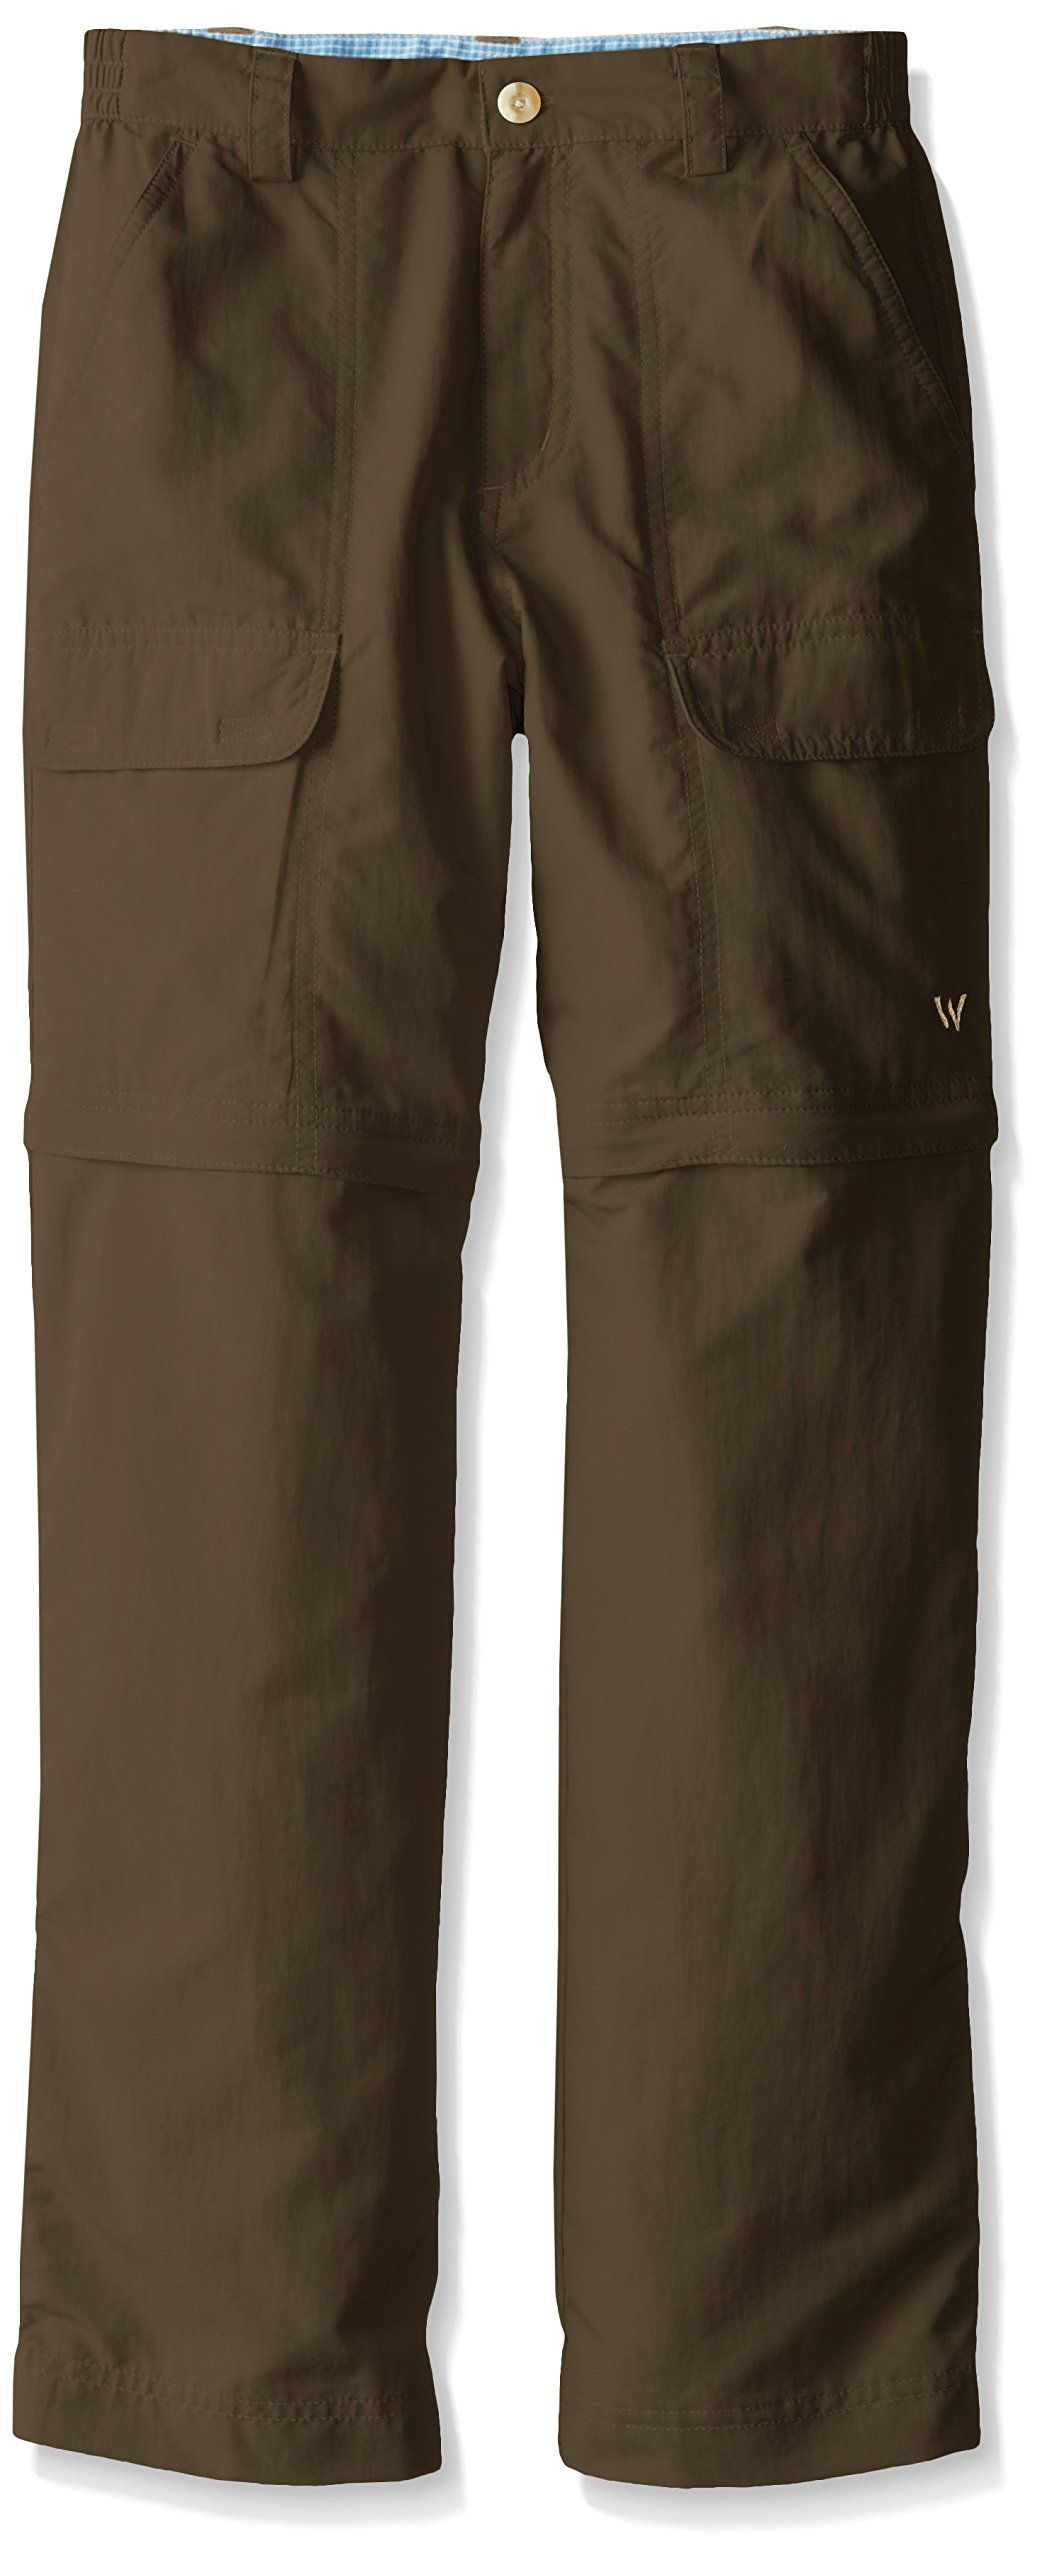 White Sierra Youth Trail Convertible Pants, Bark, Large